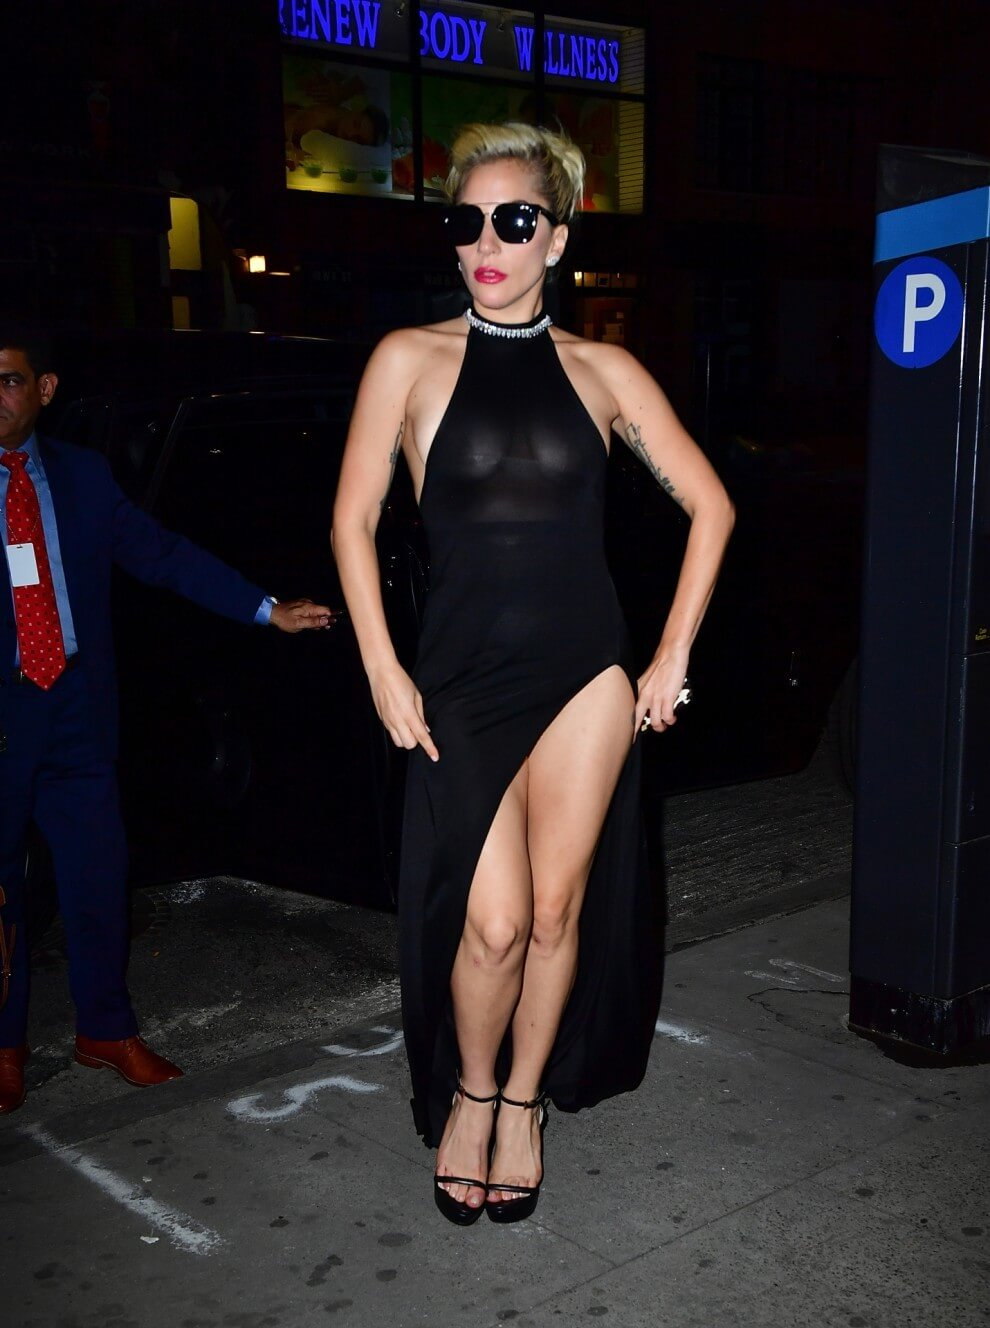 49 photos of Sexy Lady Gaga Feet prove that she is the